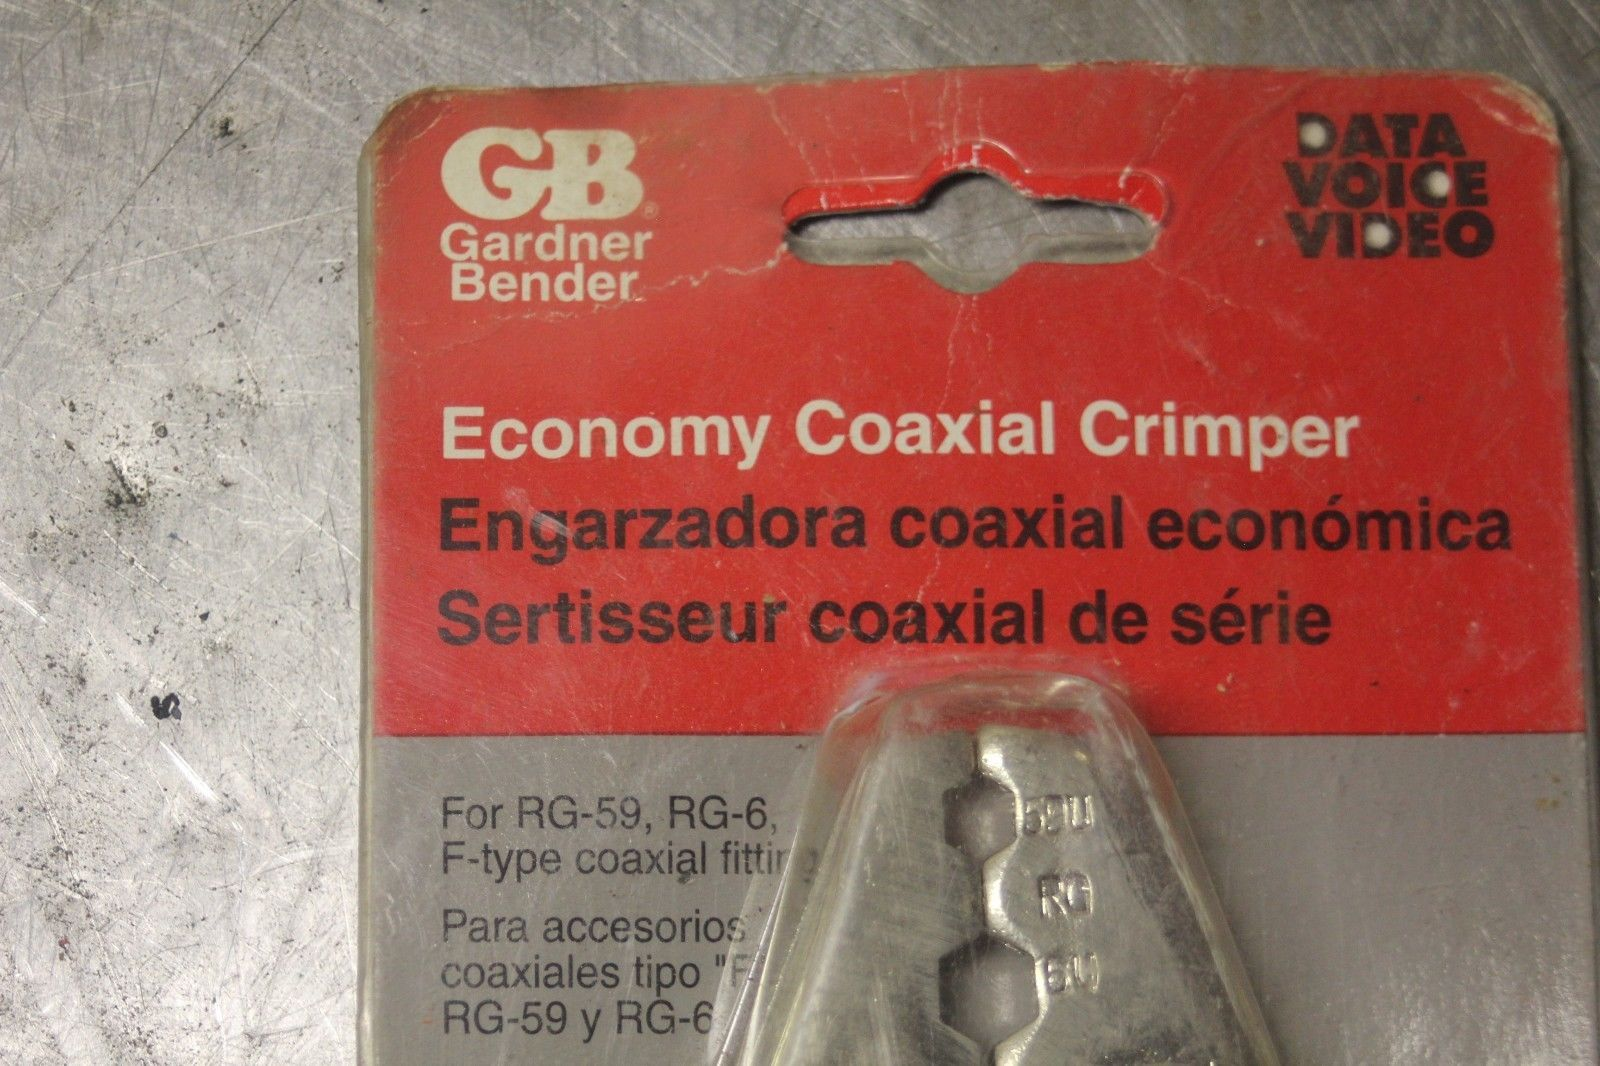 GB Economy Coaxial Crimper GS-90